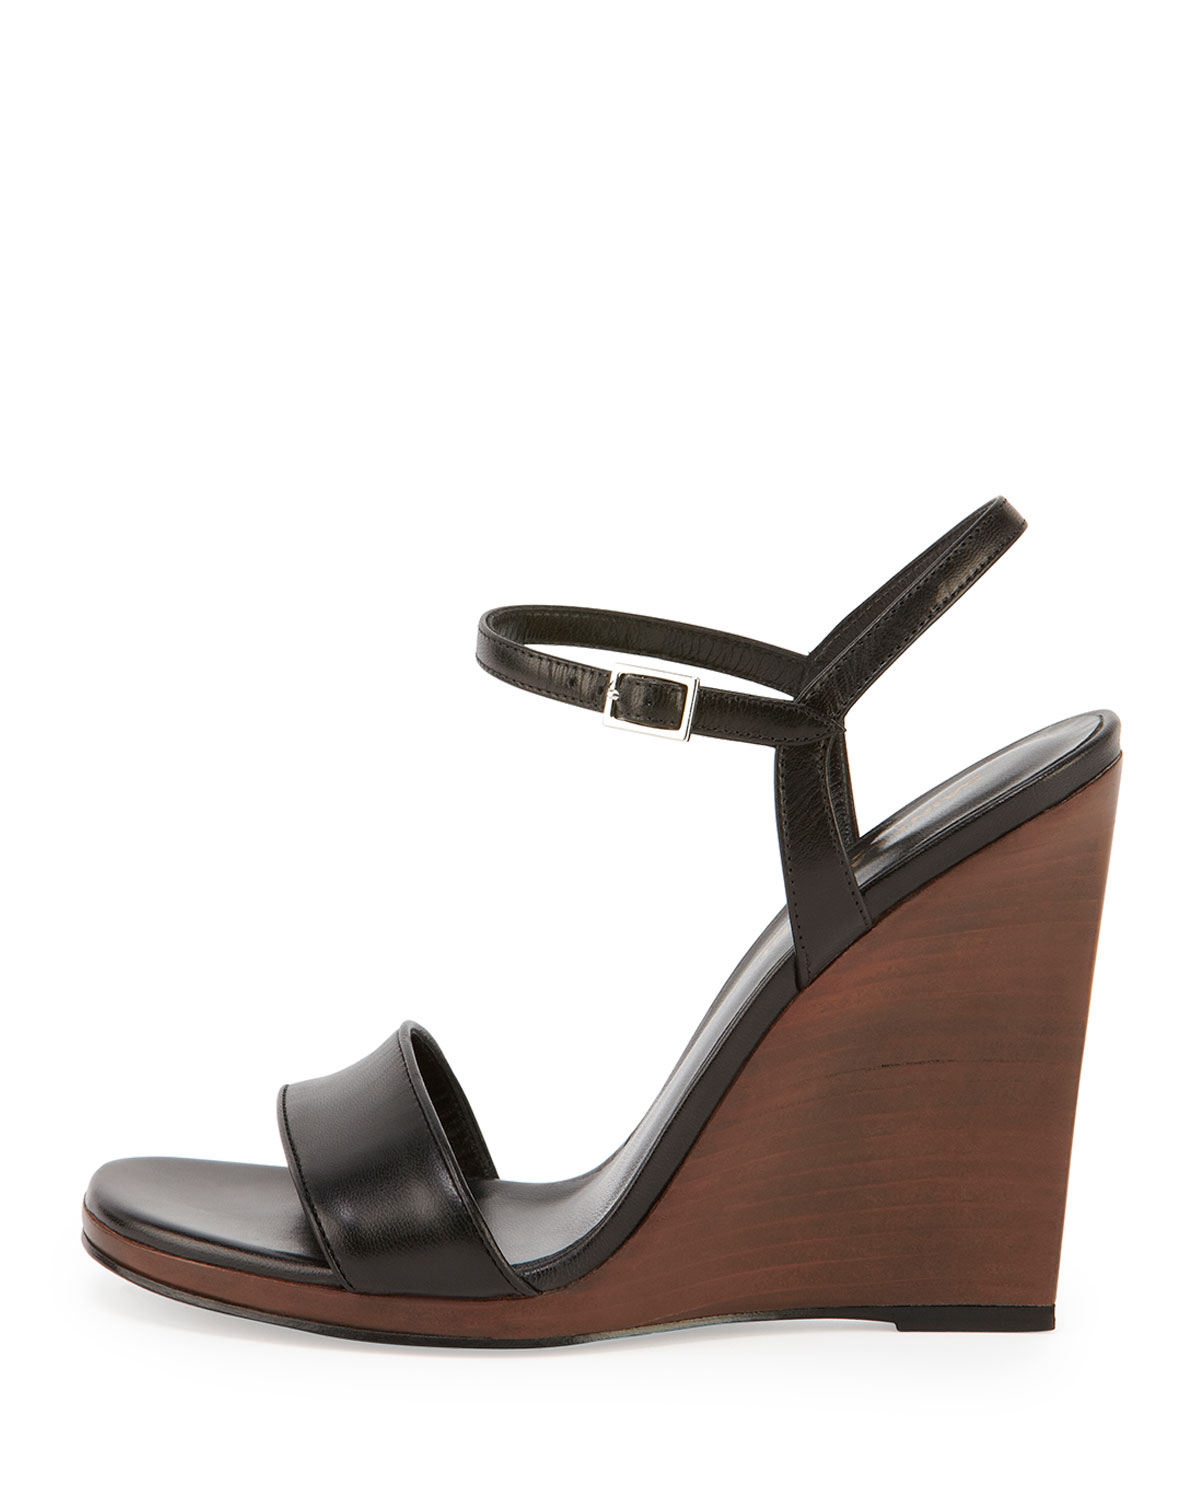 3eb4cce9cee8 Lyst - Saint Laurent Jane Wooden Wedge Sandals in Brown